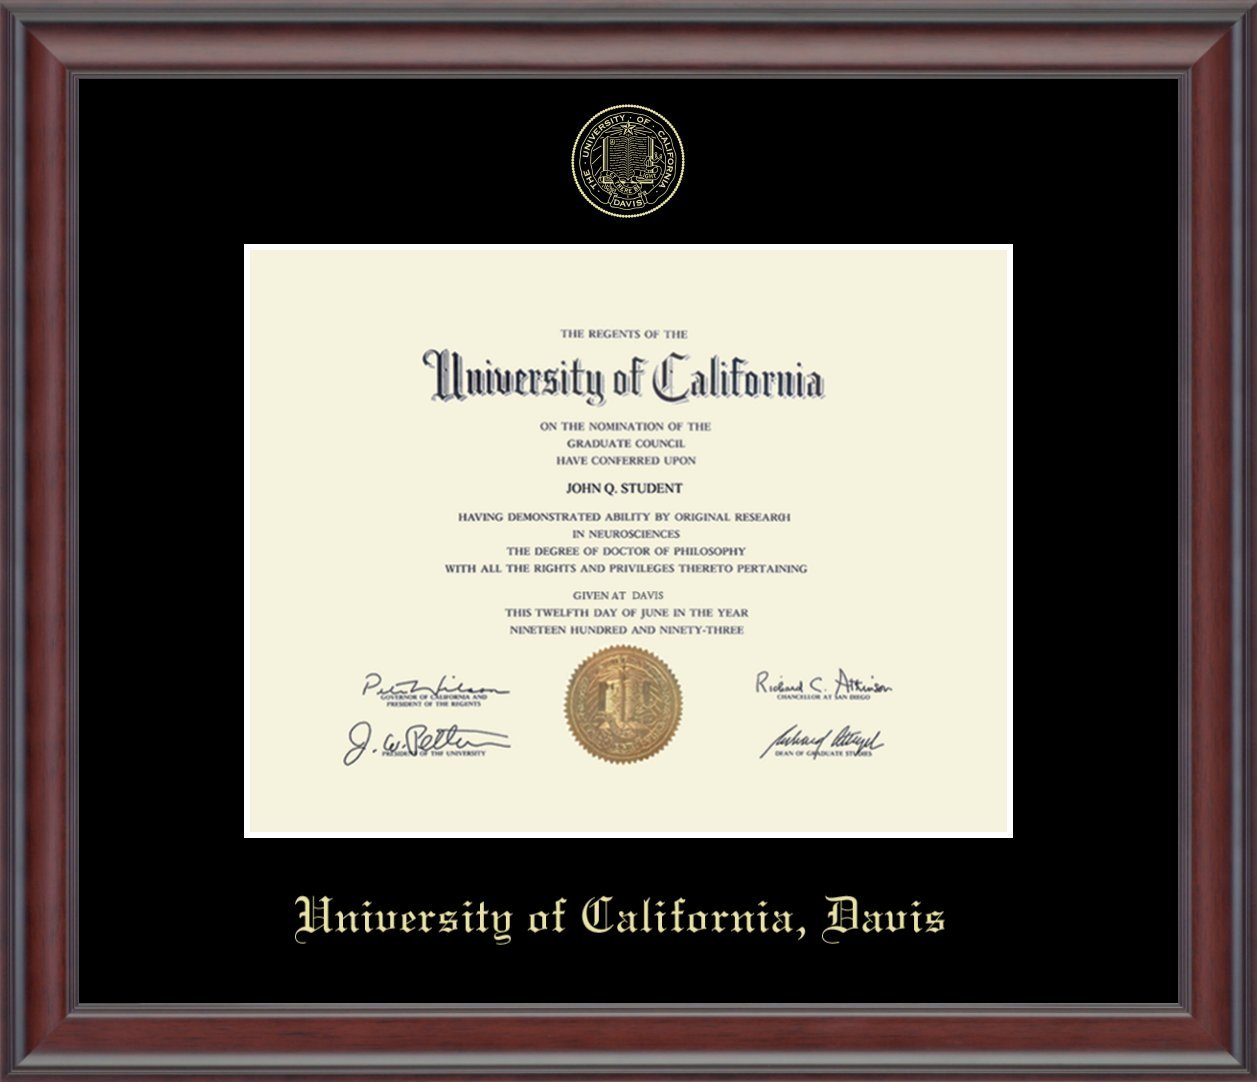 UC Davis Gold Embossed Diploma Frame - Features Solid Hardwood ''Studio'' Moulding - Officially Licensed - 8.5''h x 11''w Diploma Size - By Church Hill Classics by Church Hill Classics